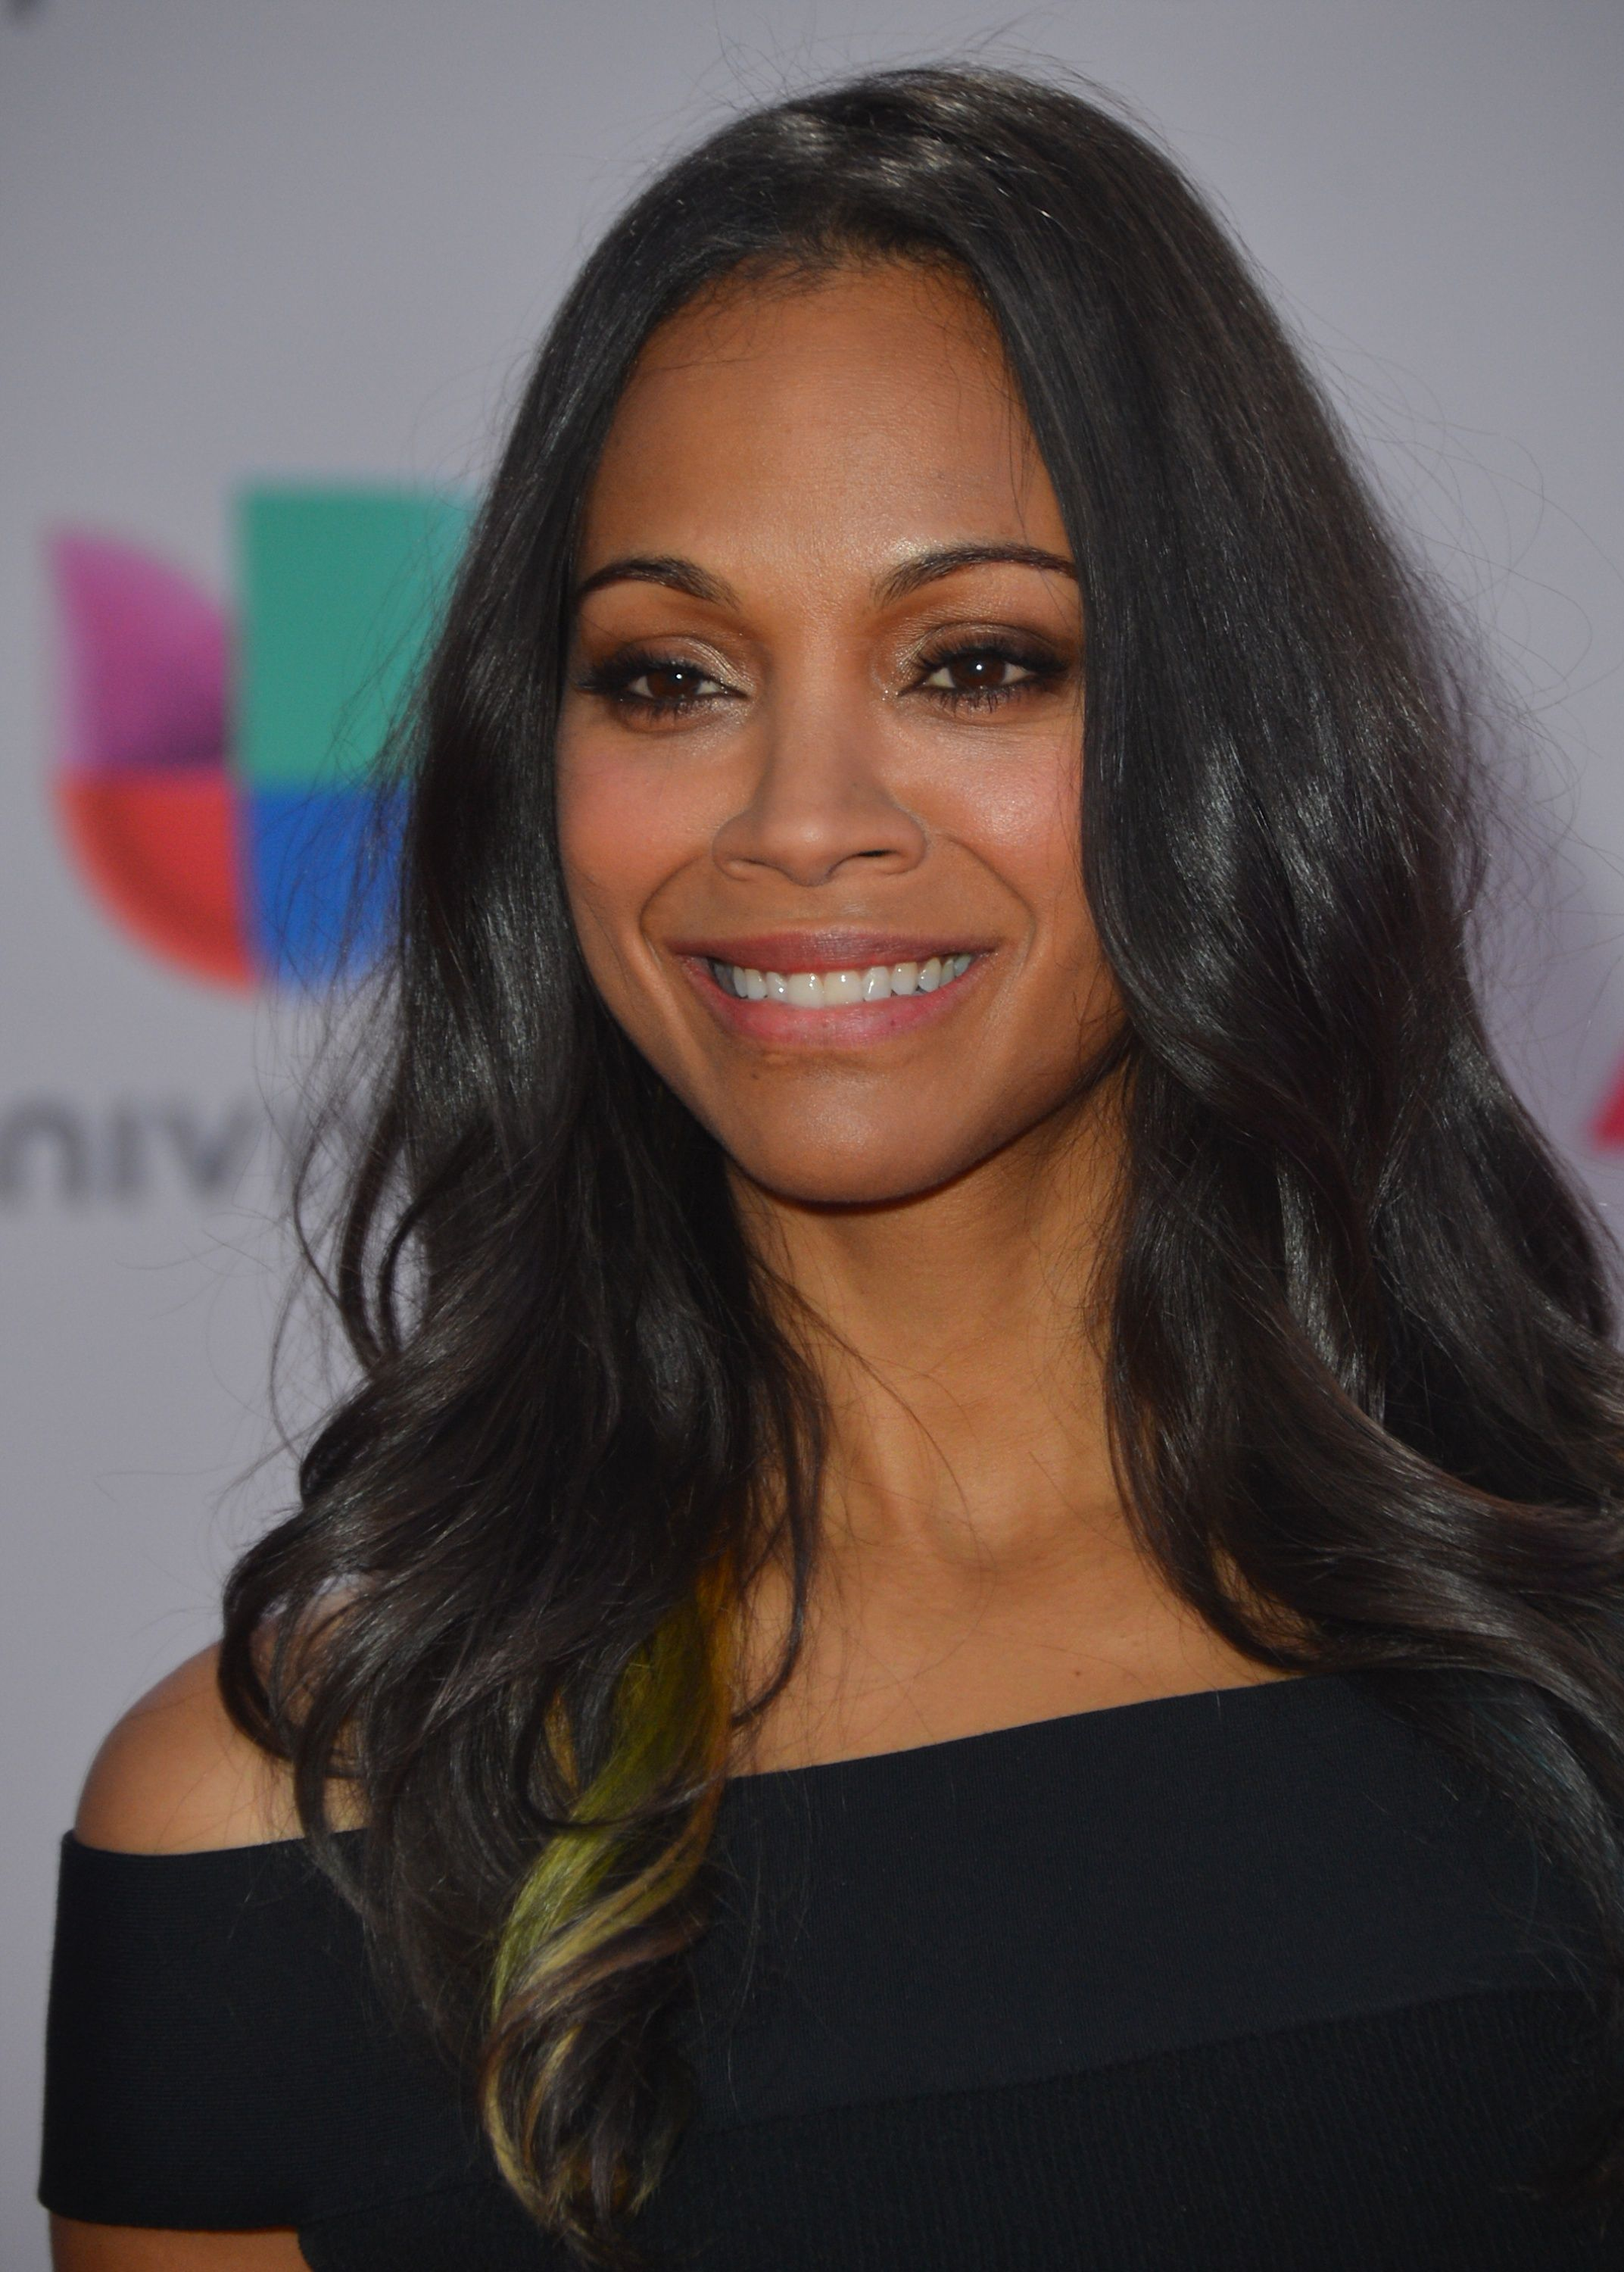 Foto Zoe Saldana nudes (67 photos), Ass, Fappening, Instagram, in bikini 2019